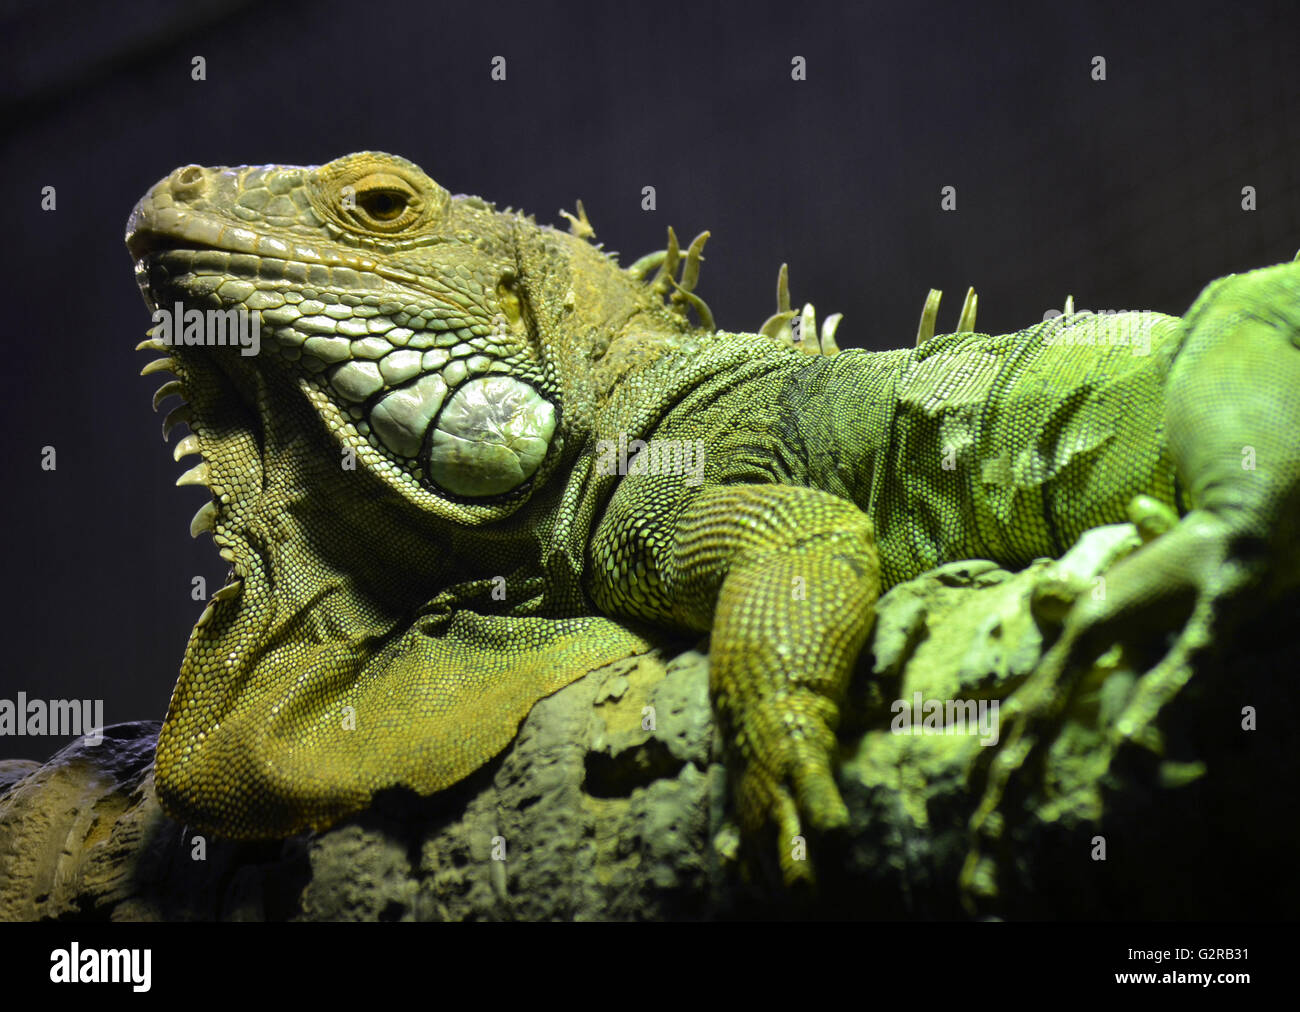 Big green scaly Iguana with its frills and folds of skin, basking on a tree branch - Stock Image